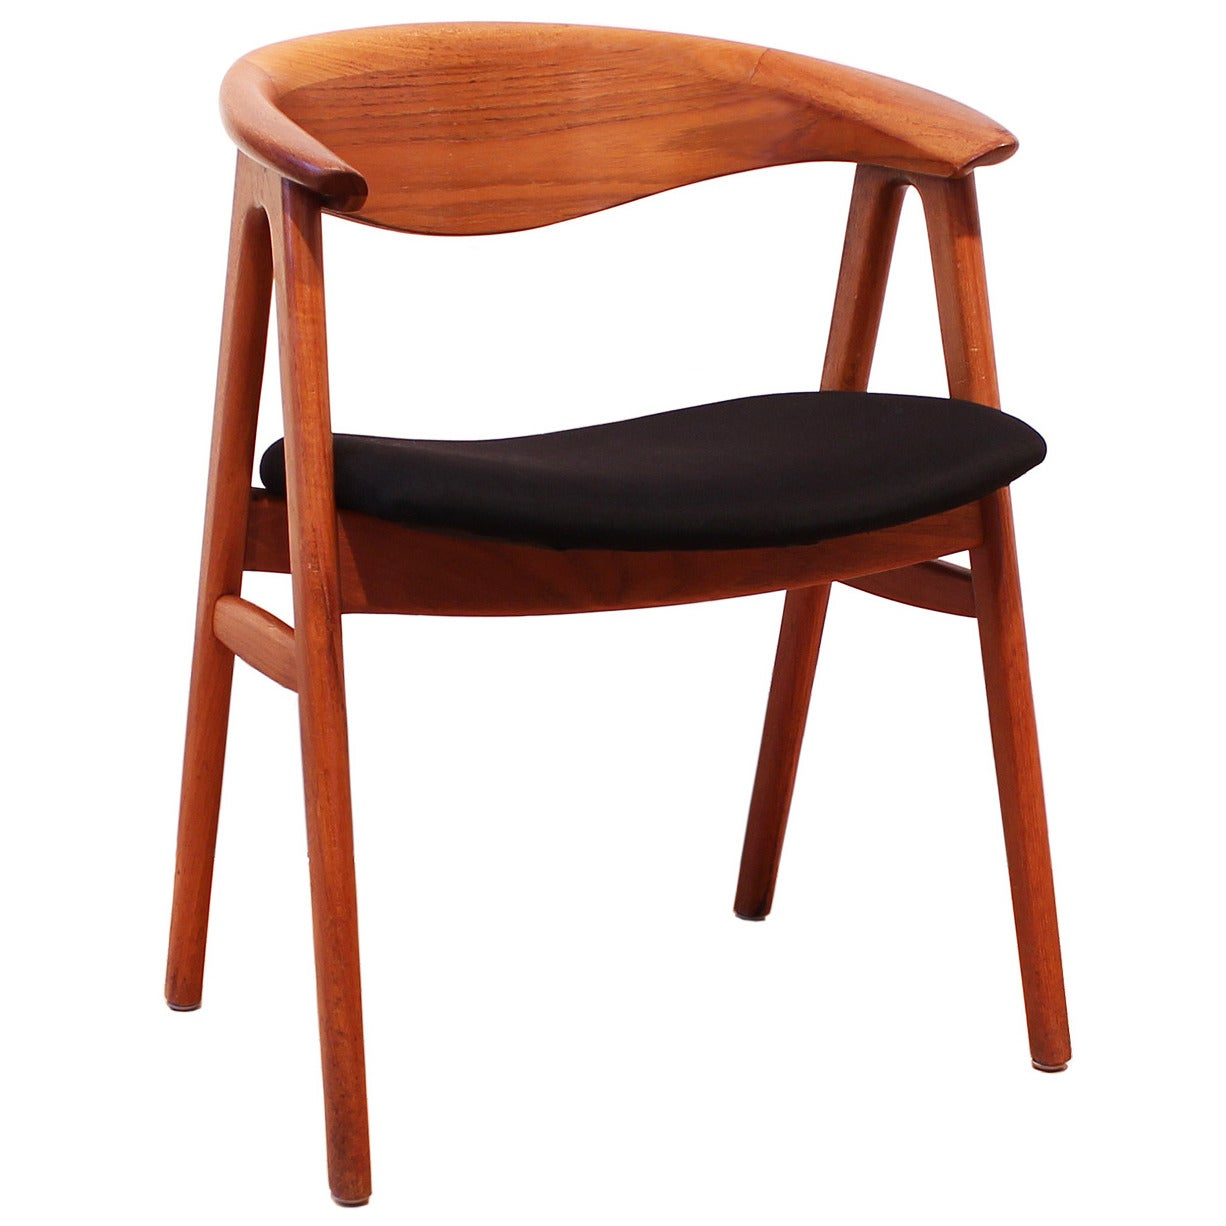 erik kirkegaard teak compass sculpted chair at 1stdibs